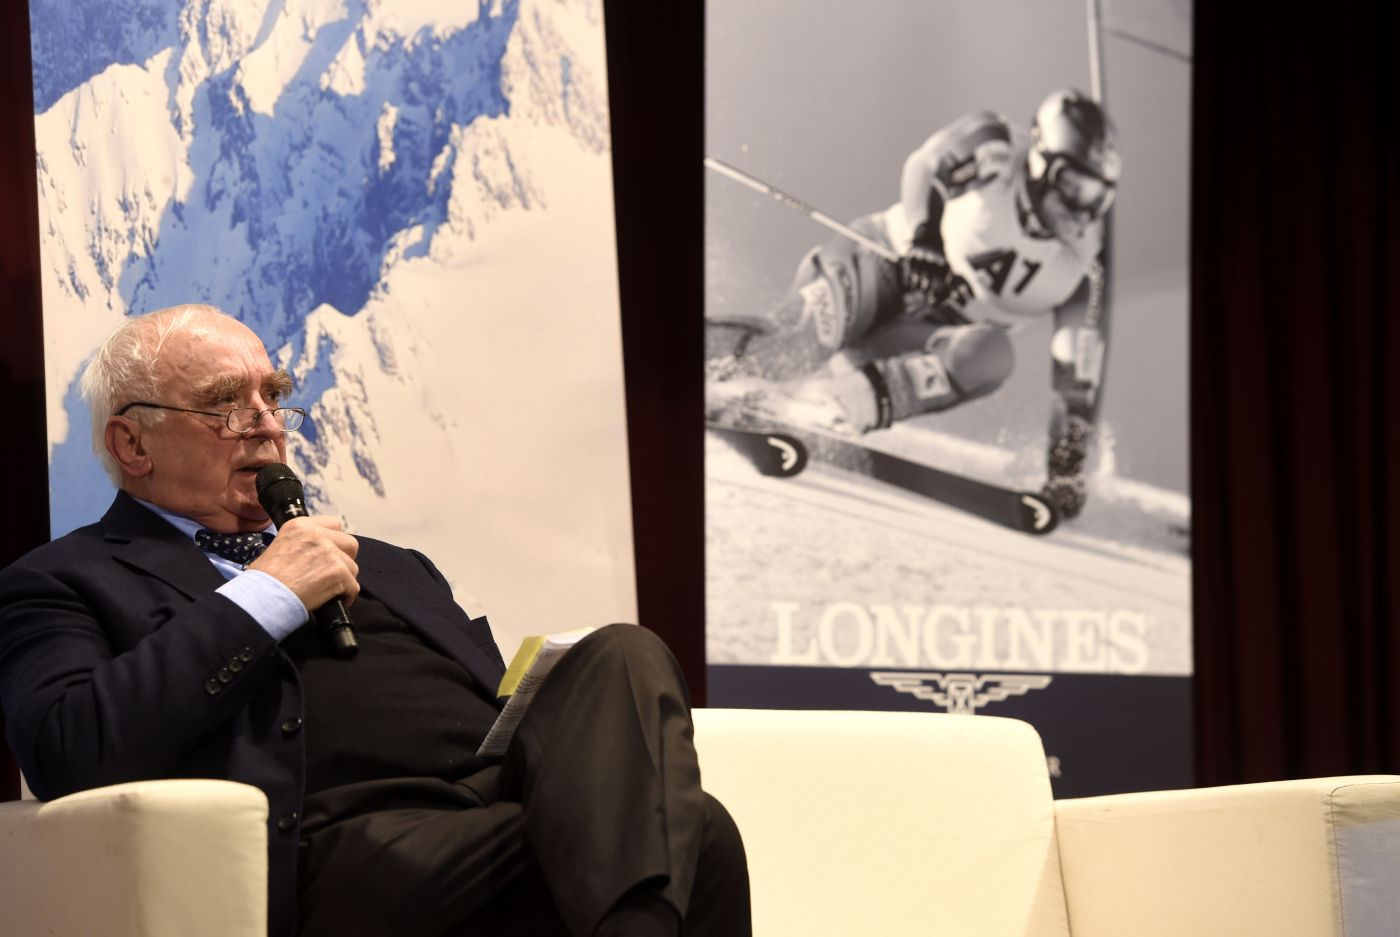 Longines Alpine Skiing Event: Longines pushes the limits of timekeeping in alpine skiing  4